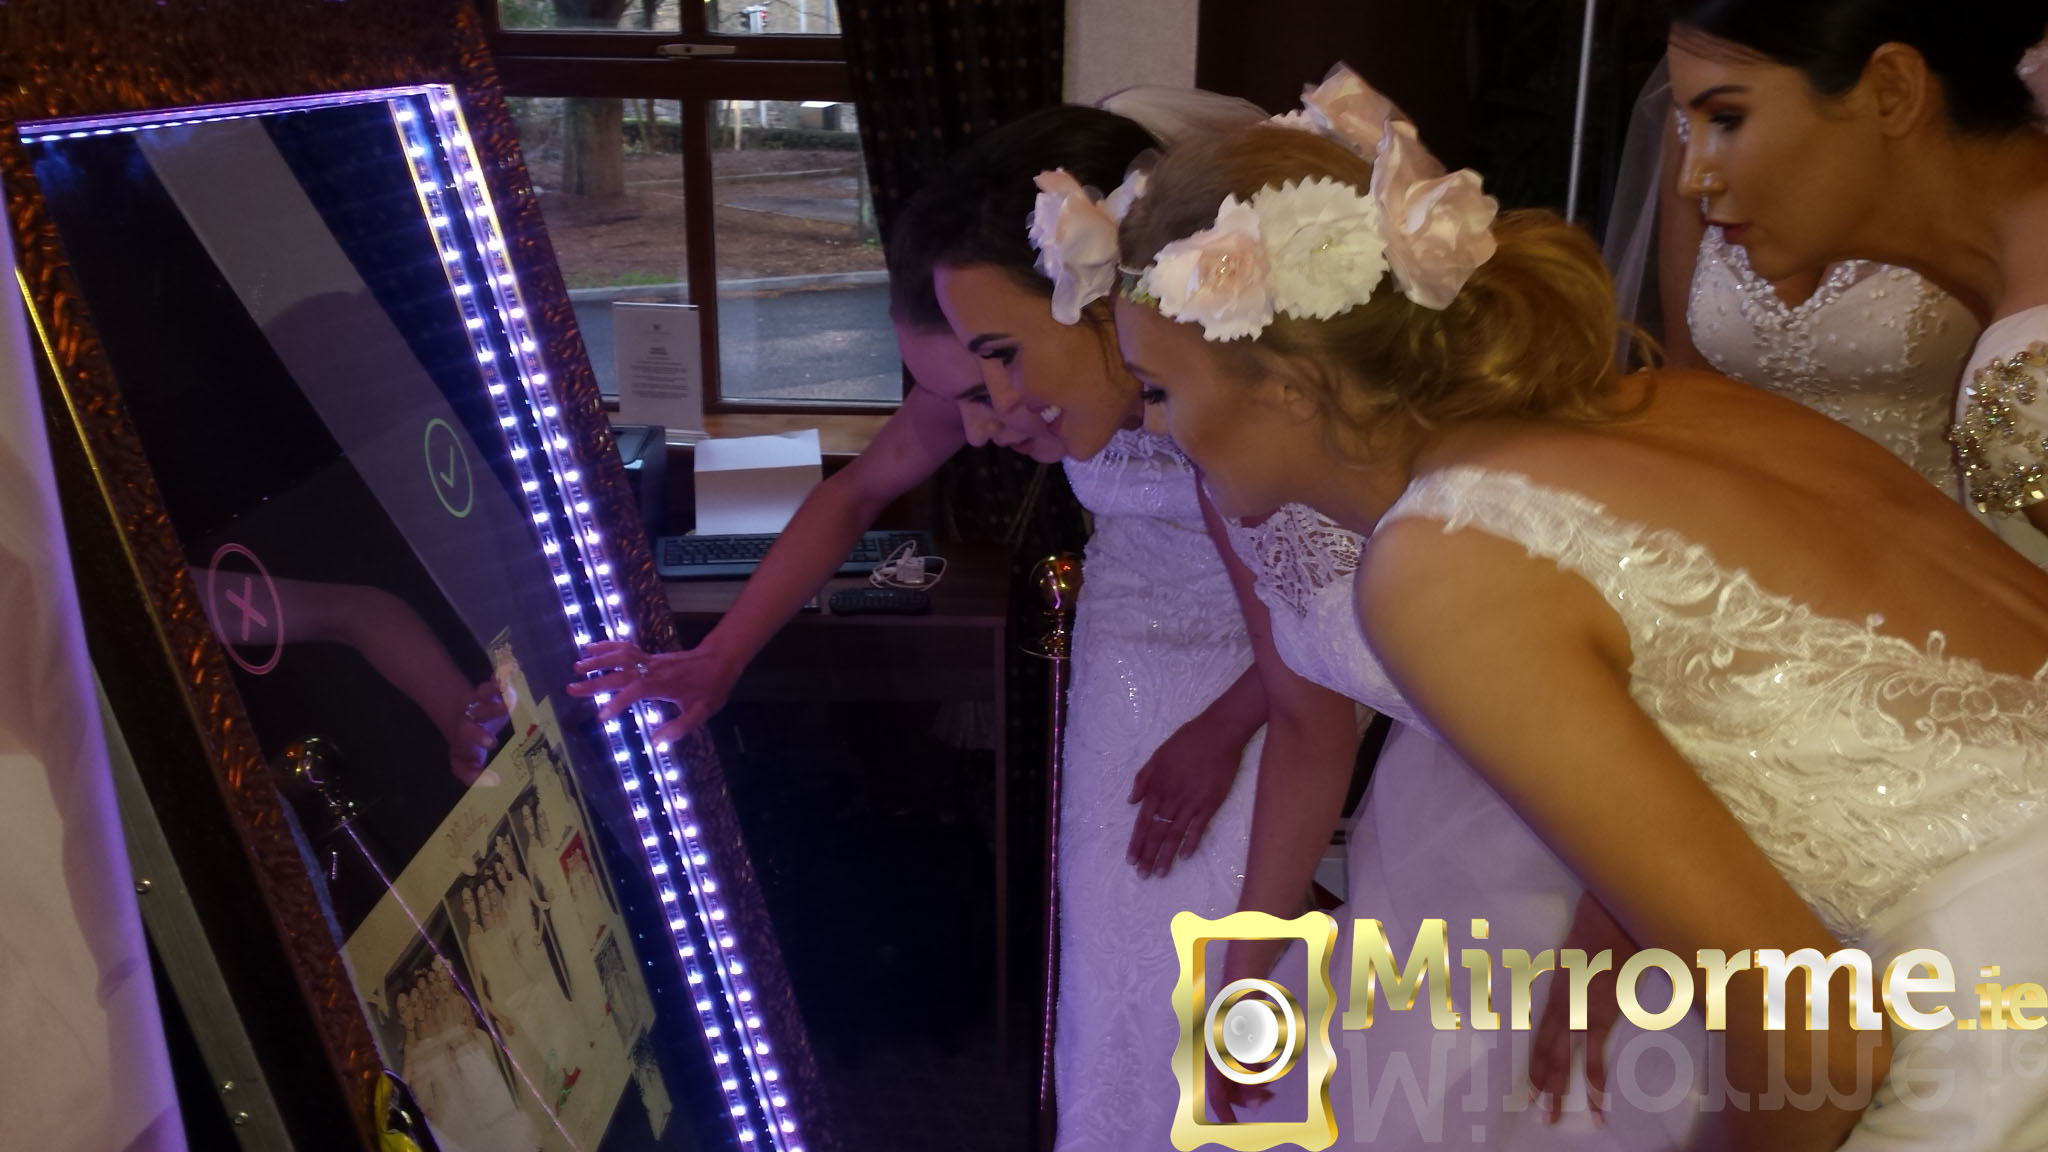 Mirrorme Booth 1